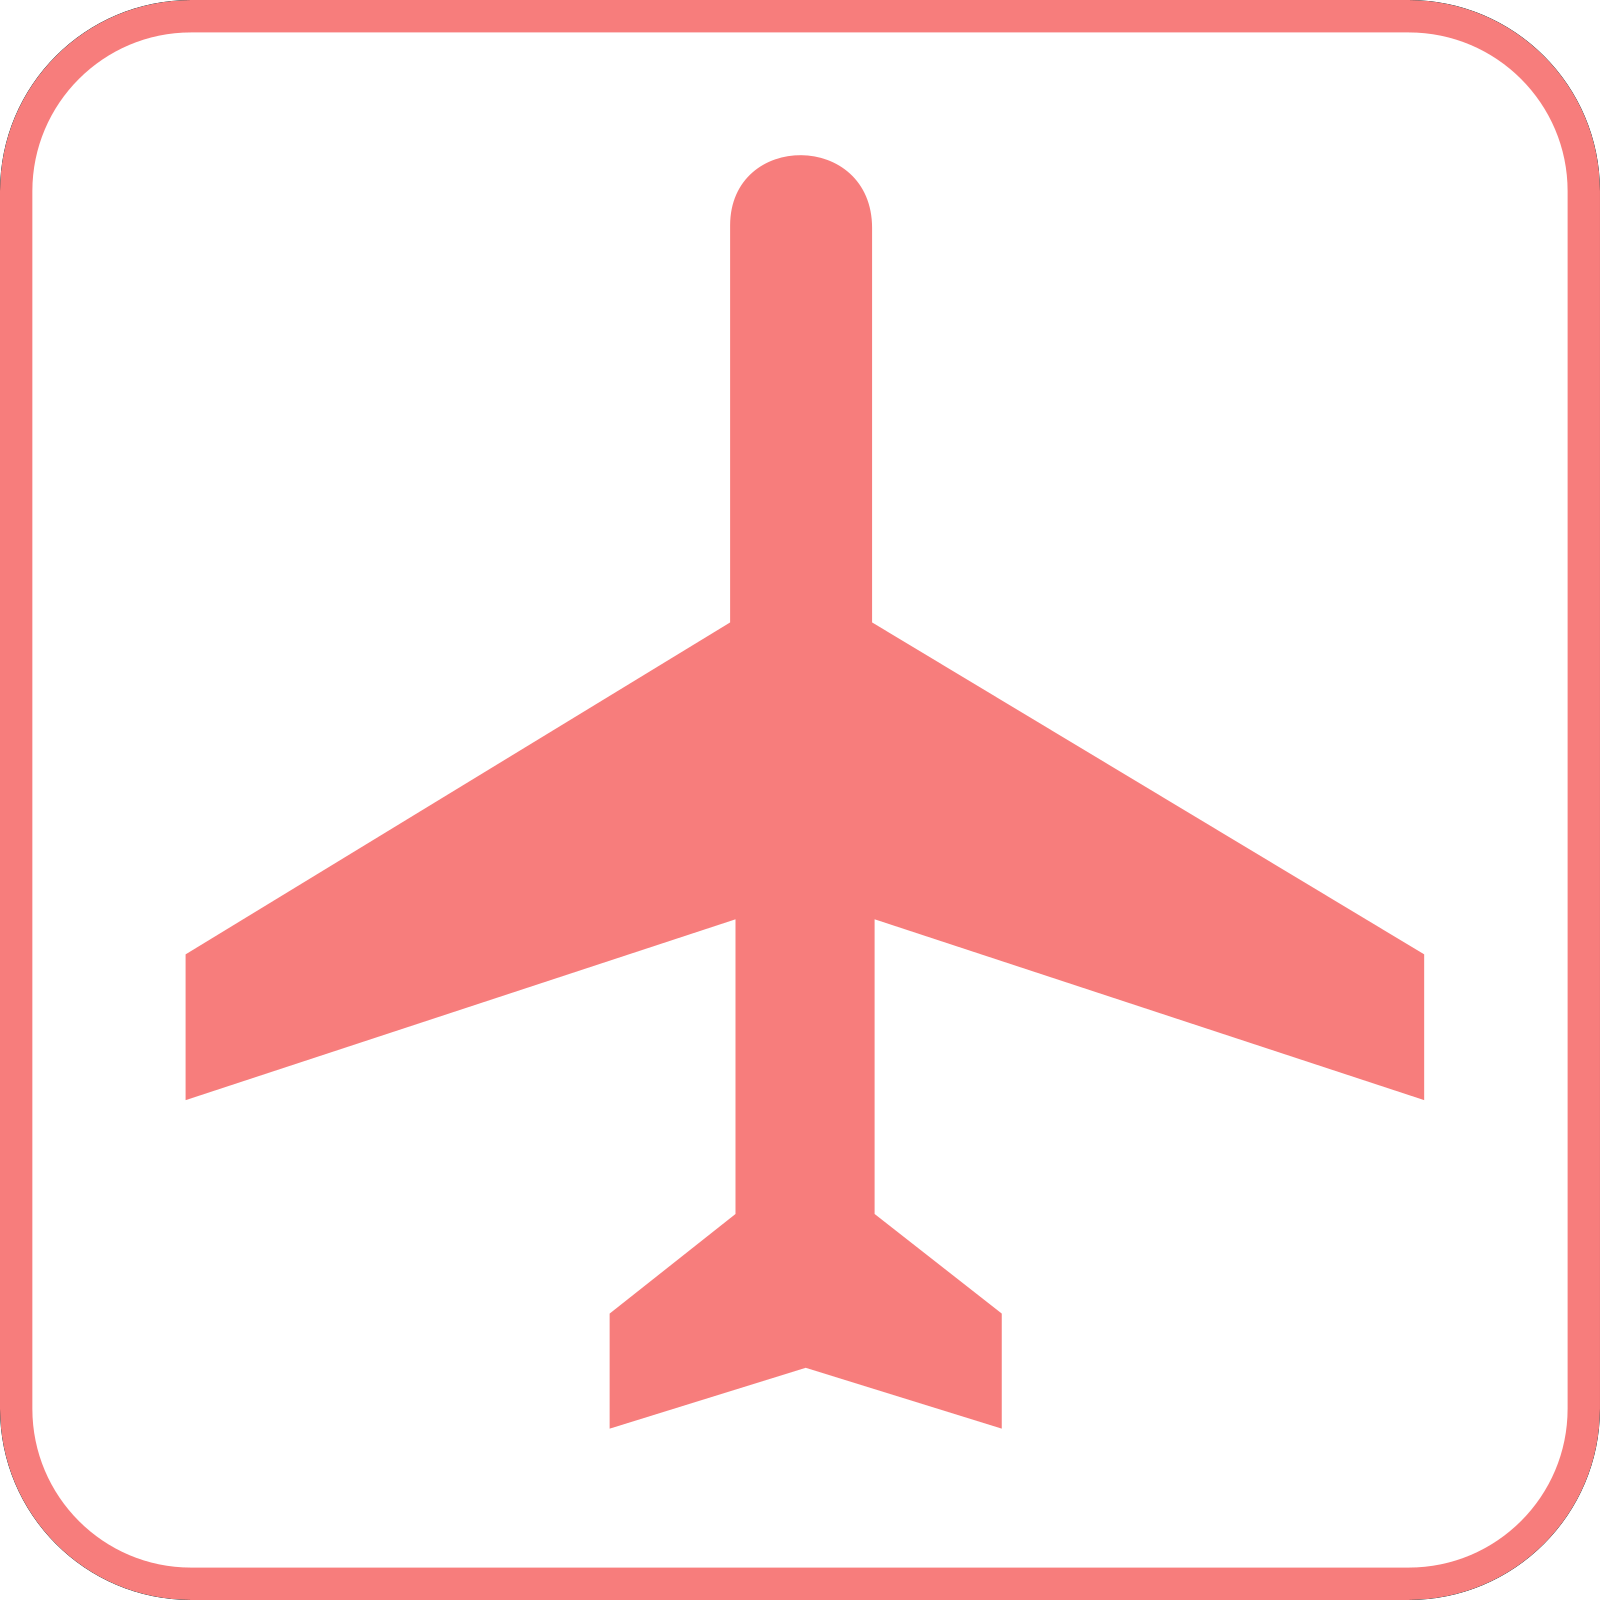 Airplane pink. Sign clip art icon